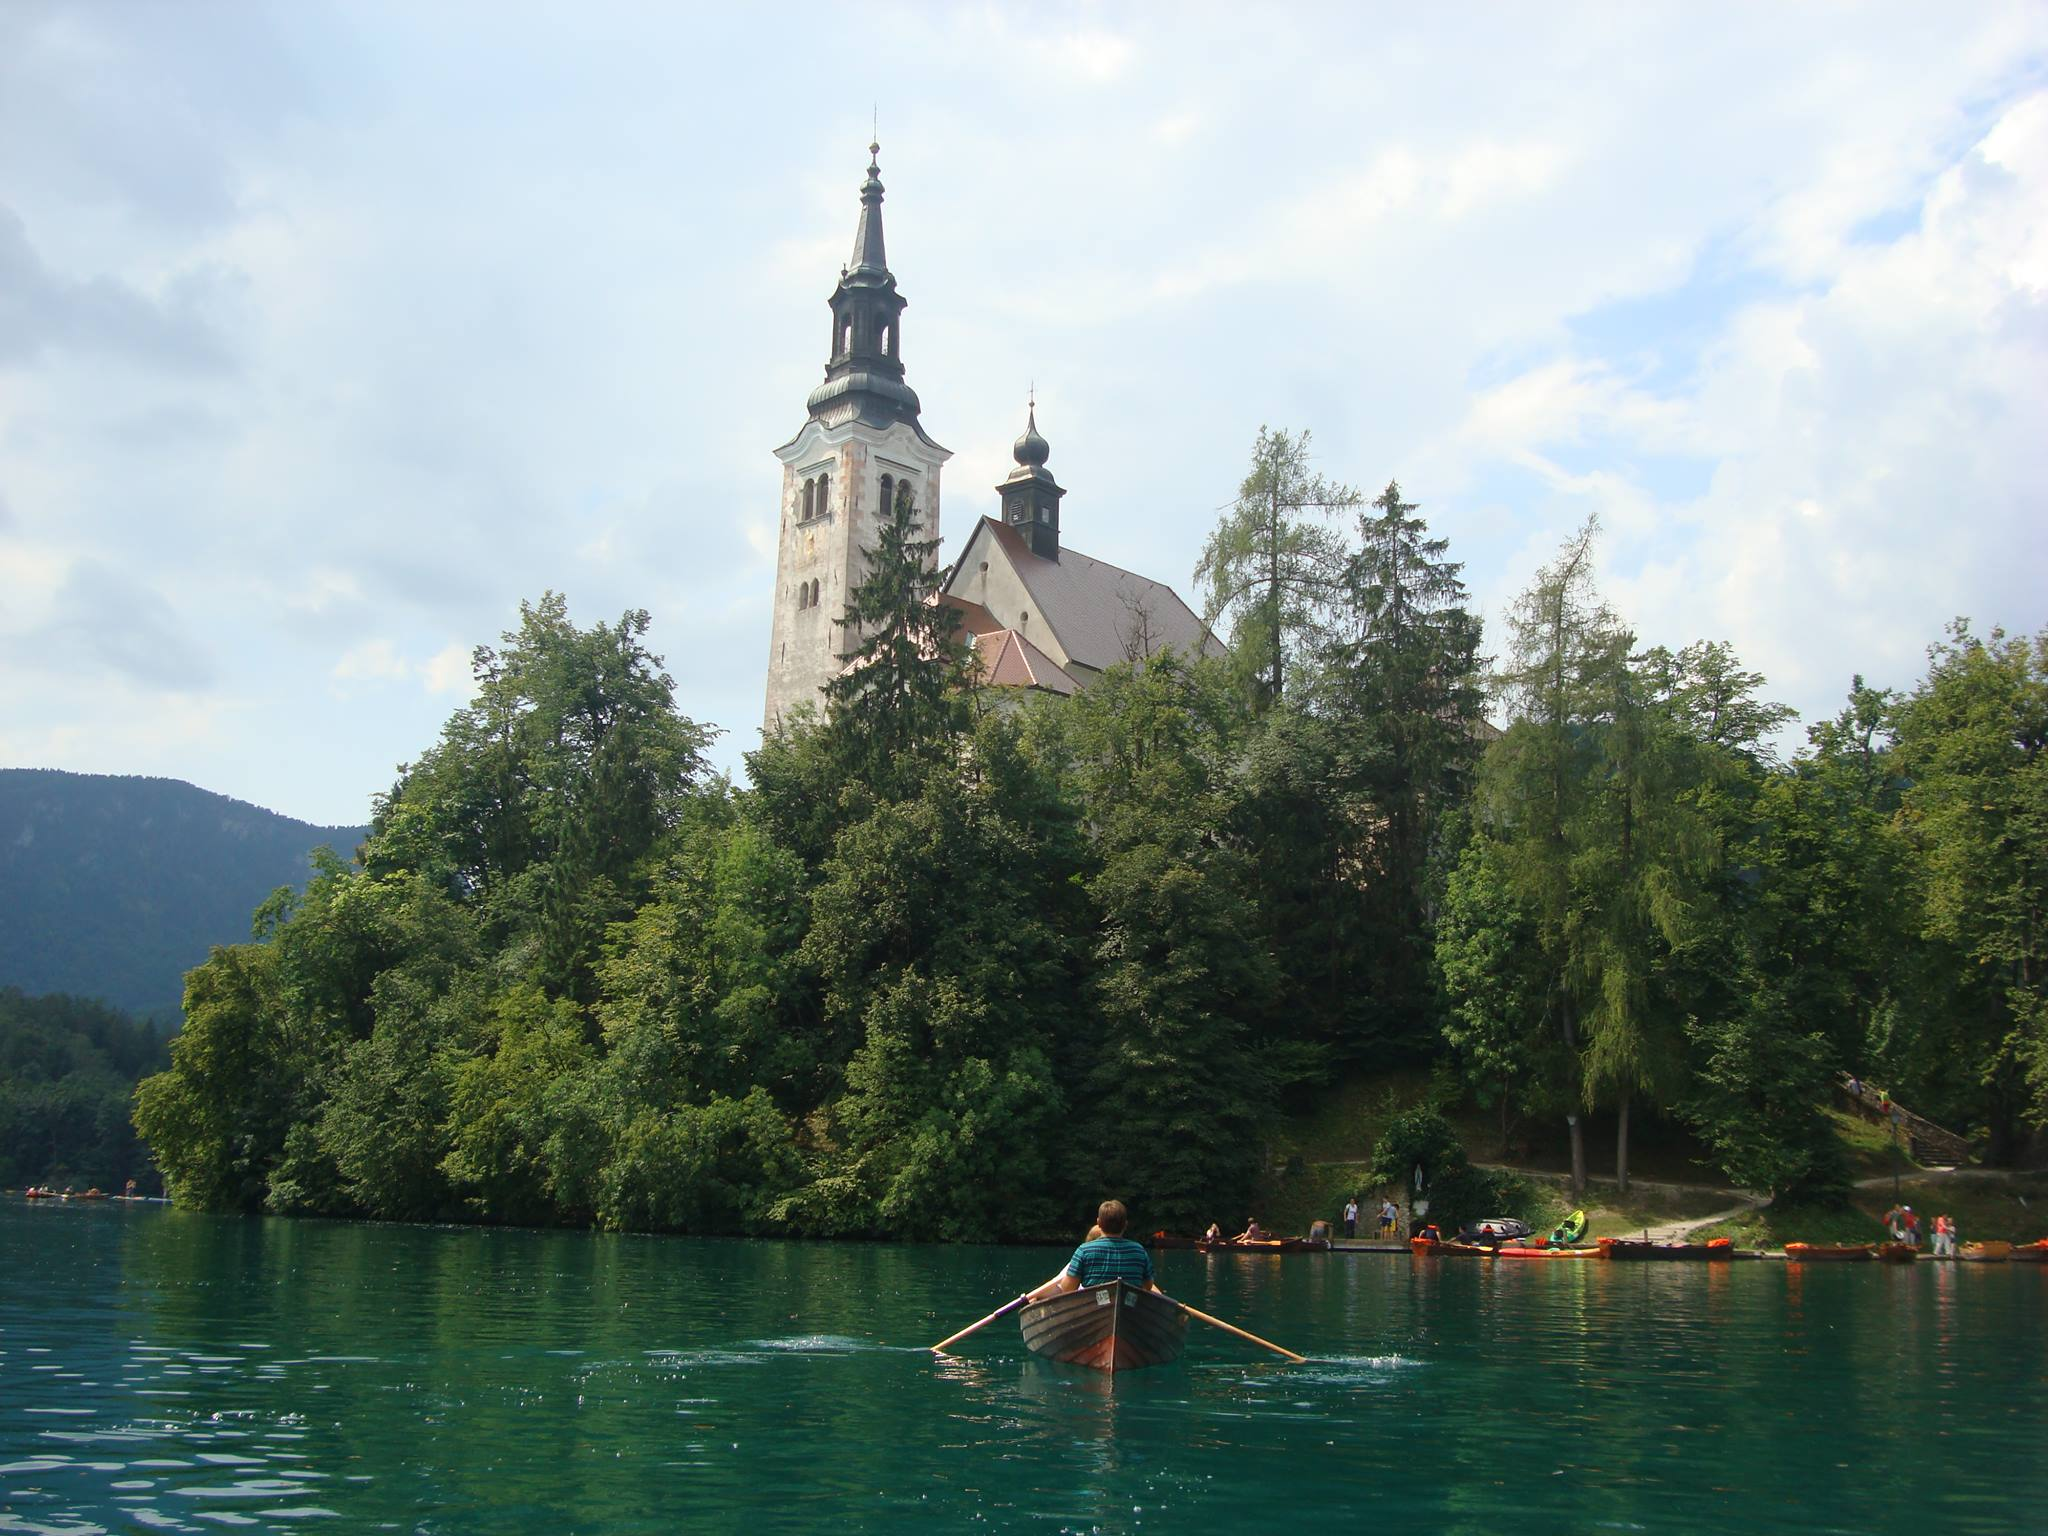 Lake Bled with the island and church